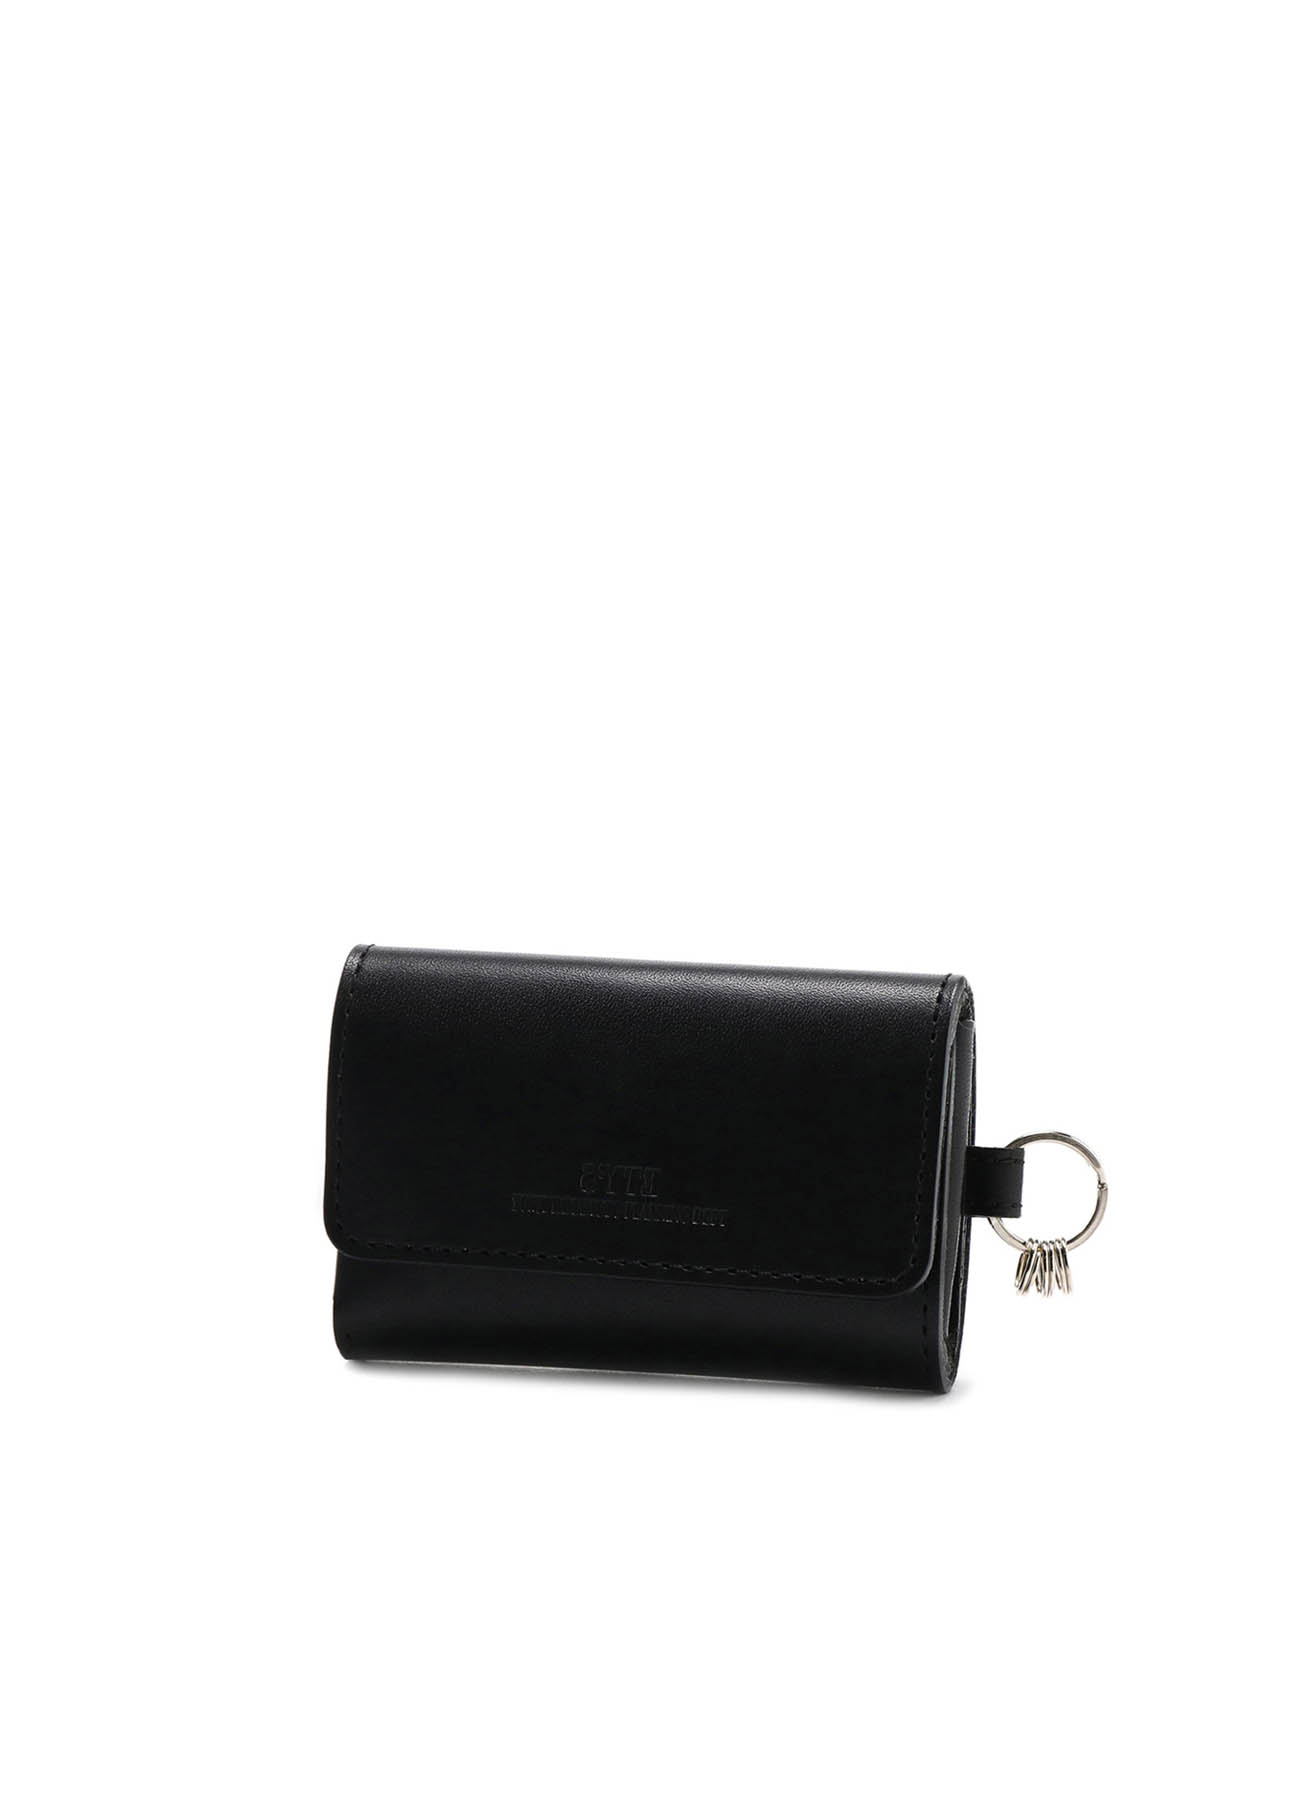 Tochigi Leather Tri-fold Mini Wallet